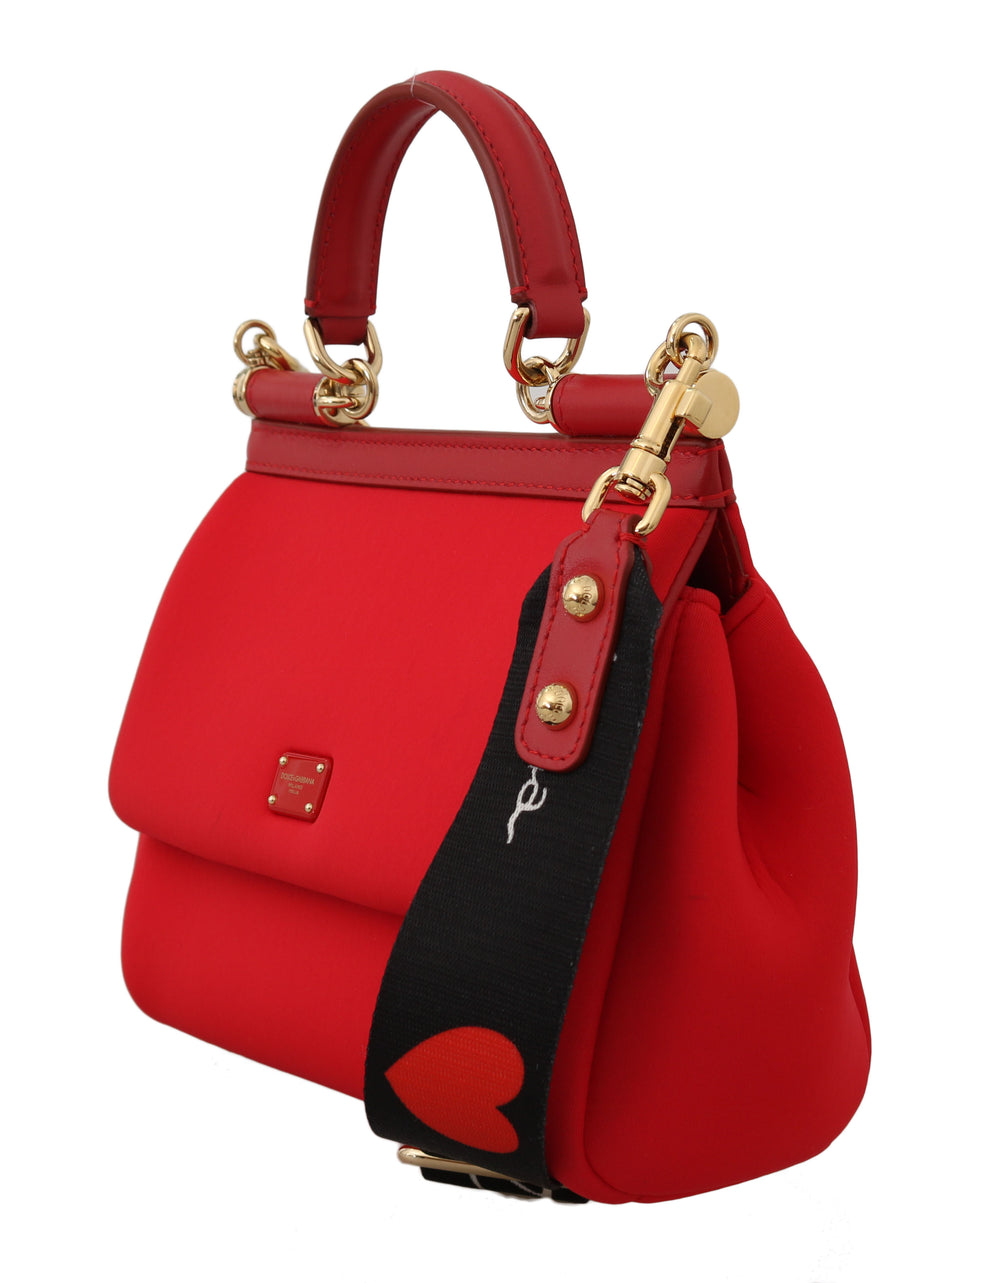 Red MISS SICILY Neoprene Heart Leather Shoulder HandBag - EnModa.no